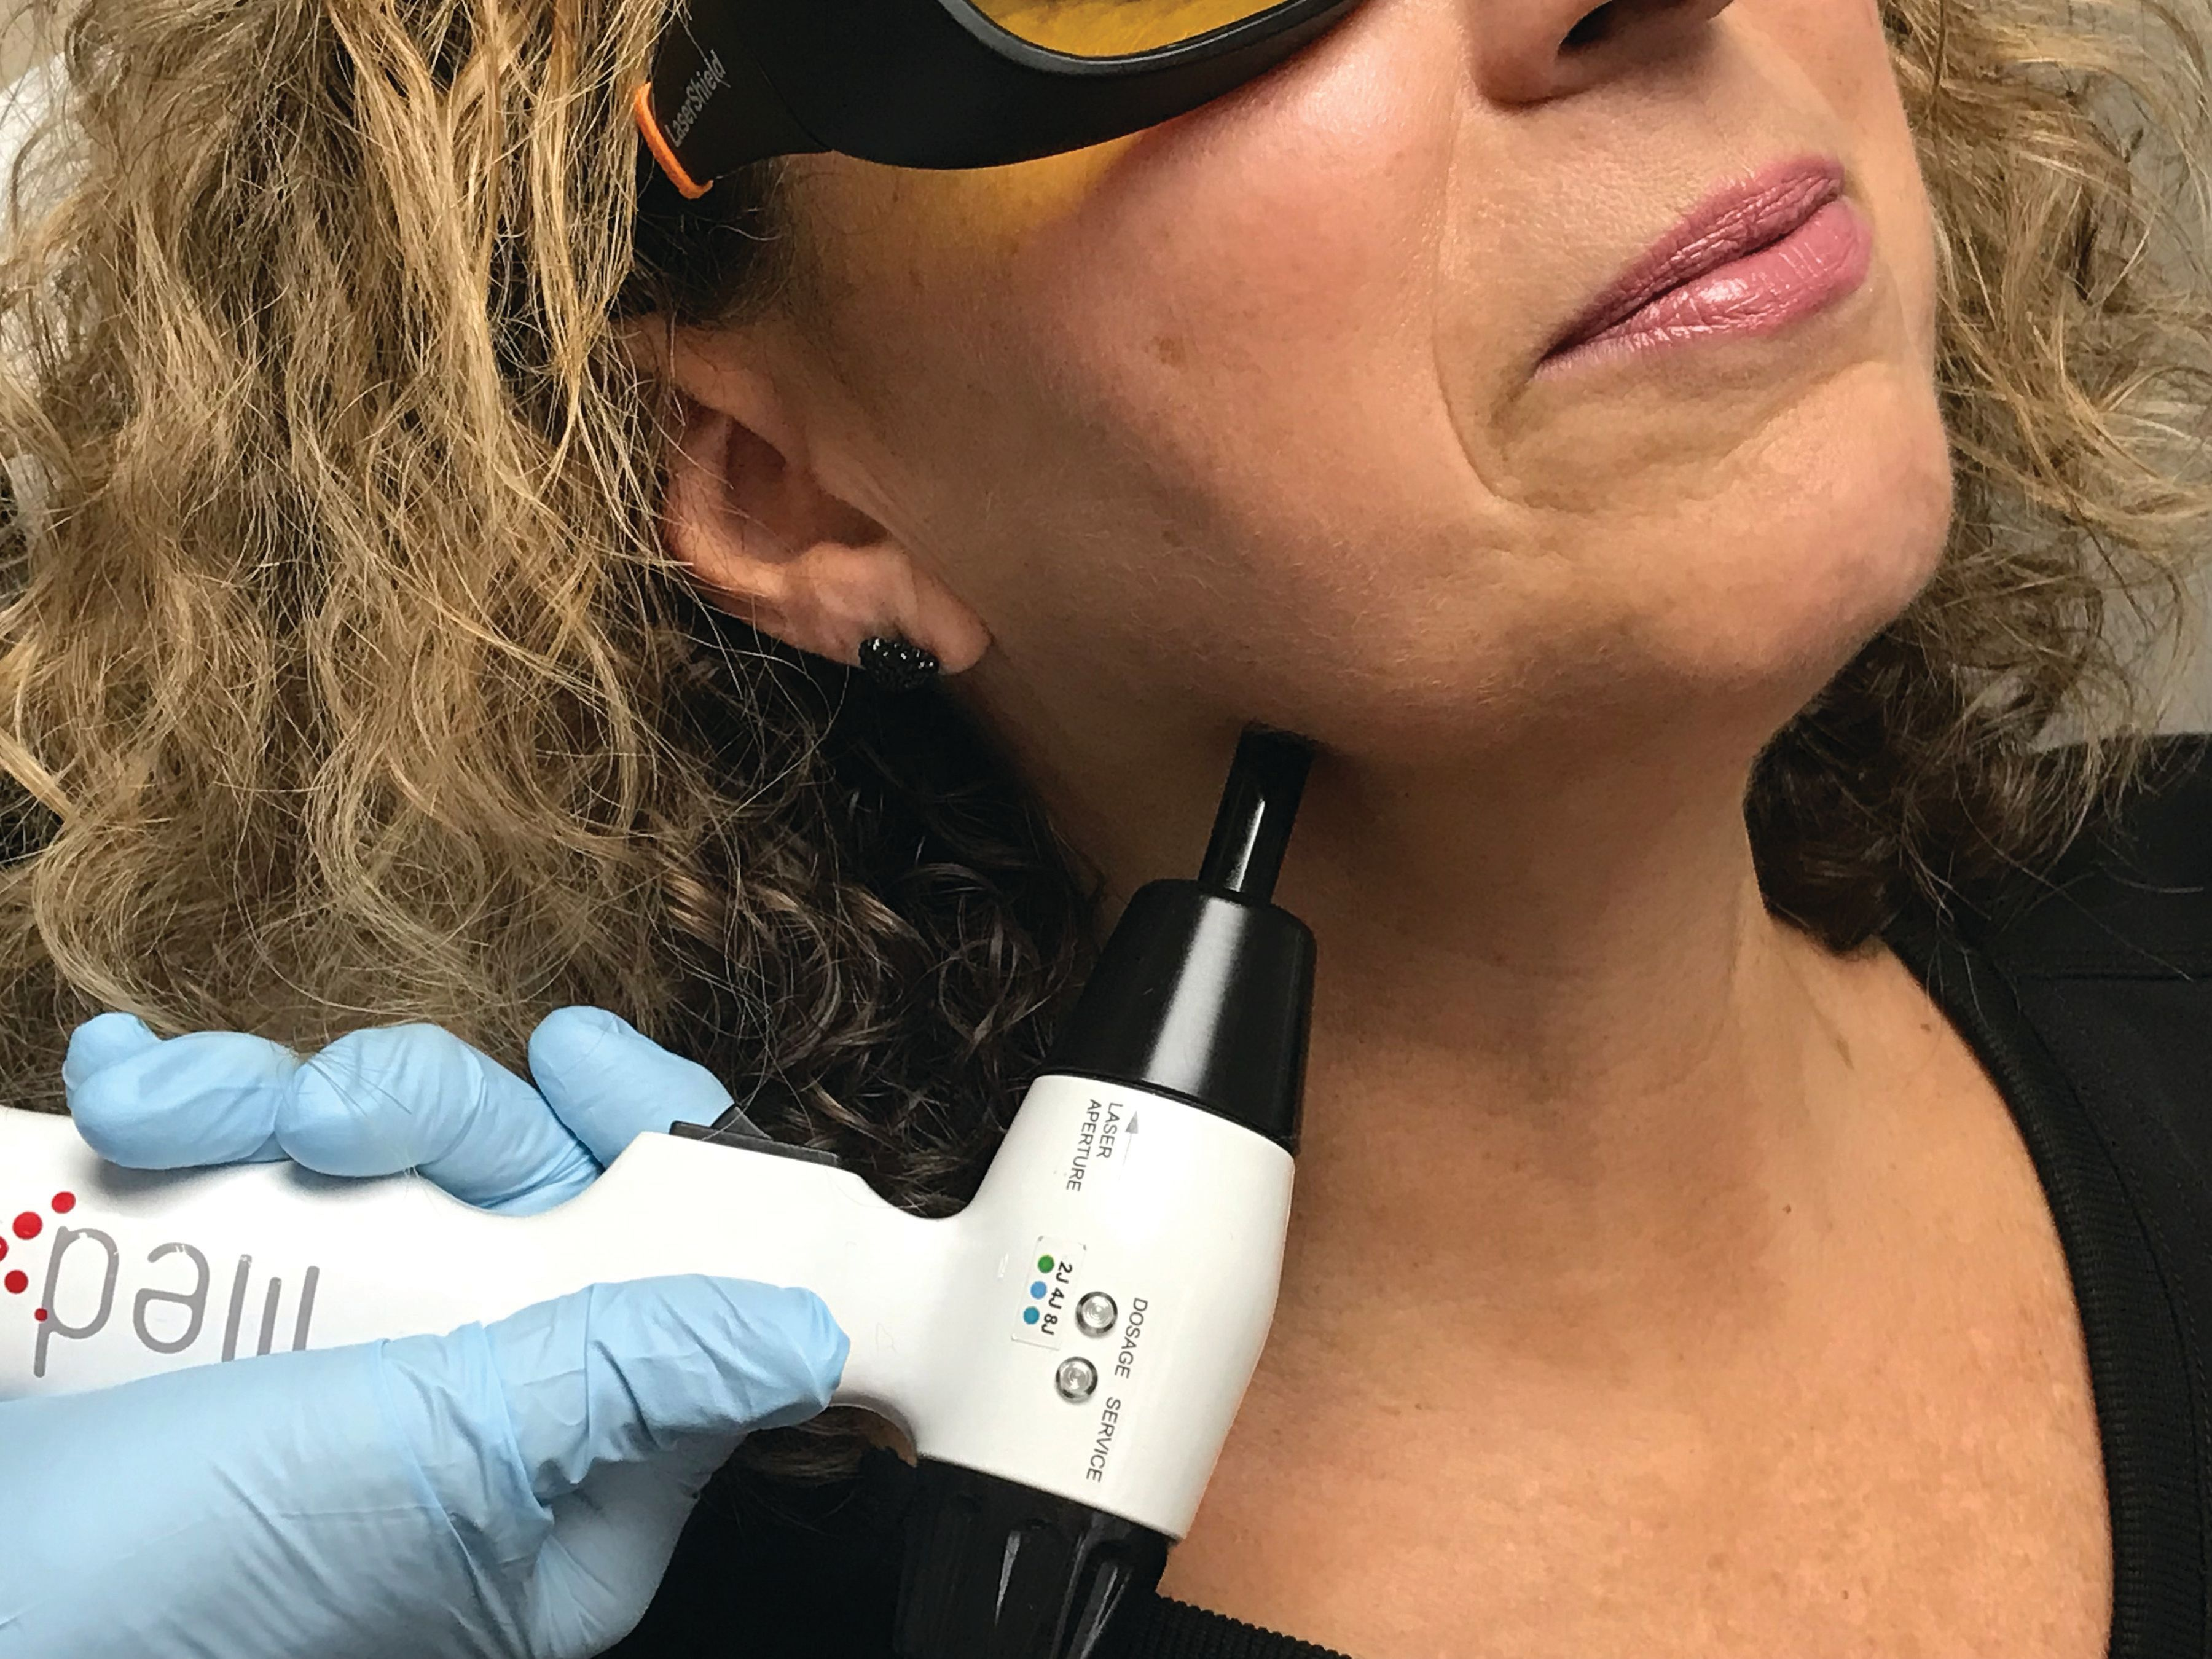 How to Treat Facial Pain With Photobiomodulation/Low-Level Laser Therapy